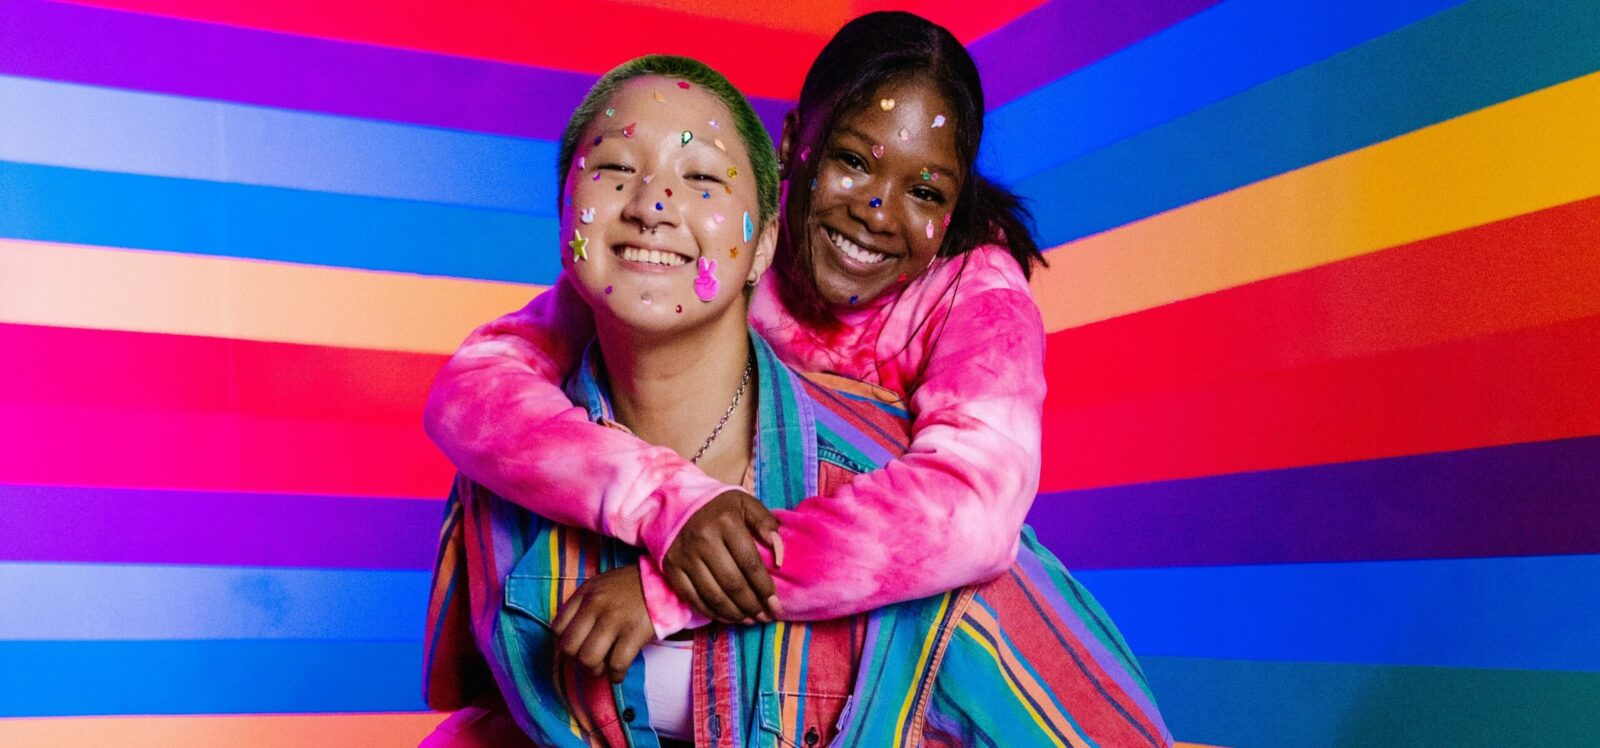 This image reflects the joy and connectedness of LGBTQI2S Youth.